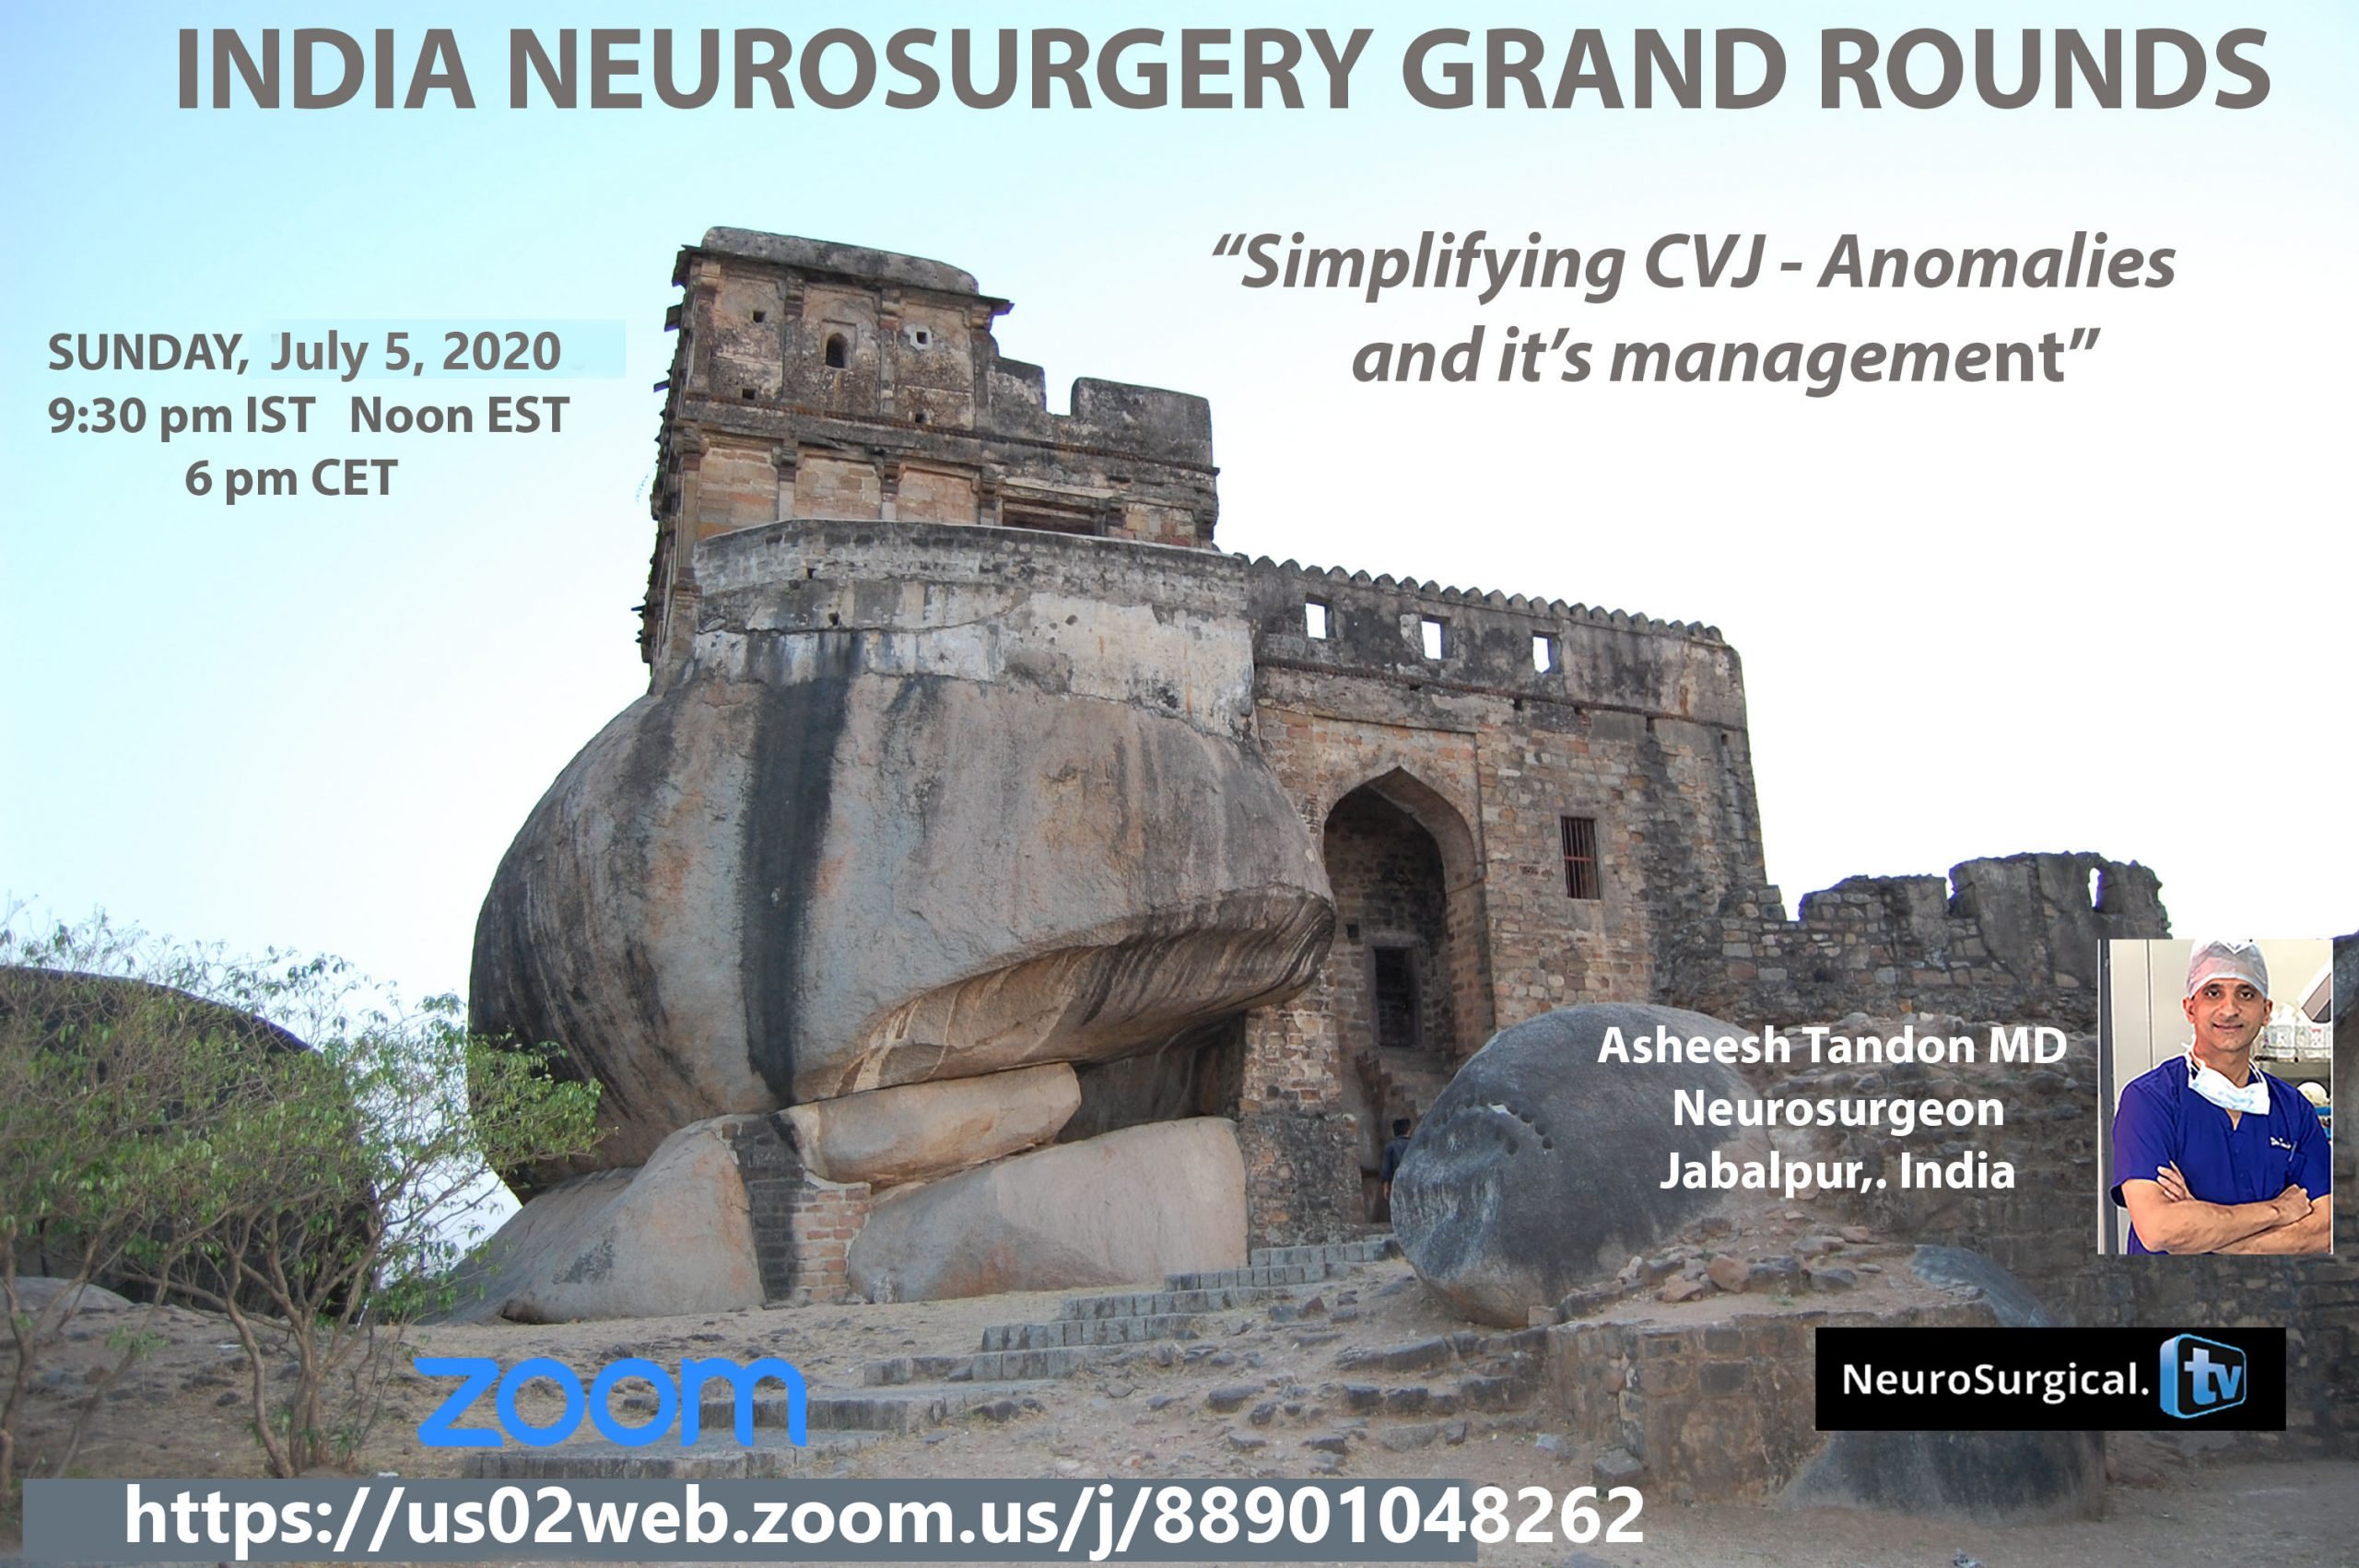 In 3 hours….India Neurosurgery Grand Rounds, with Asheesh Tandon MD, presenting